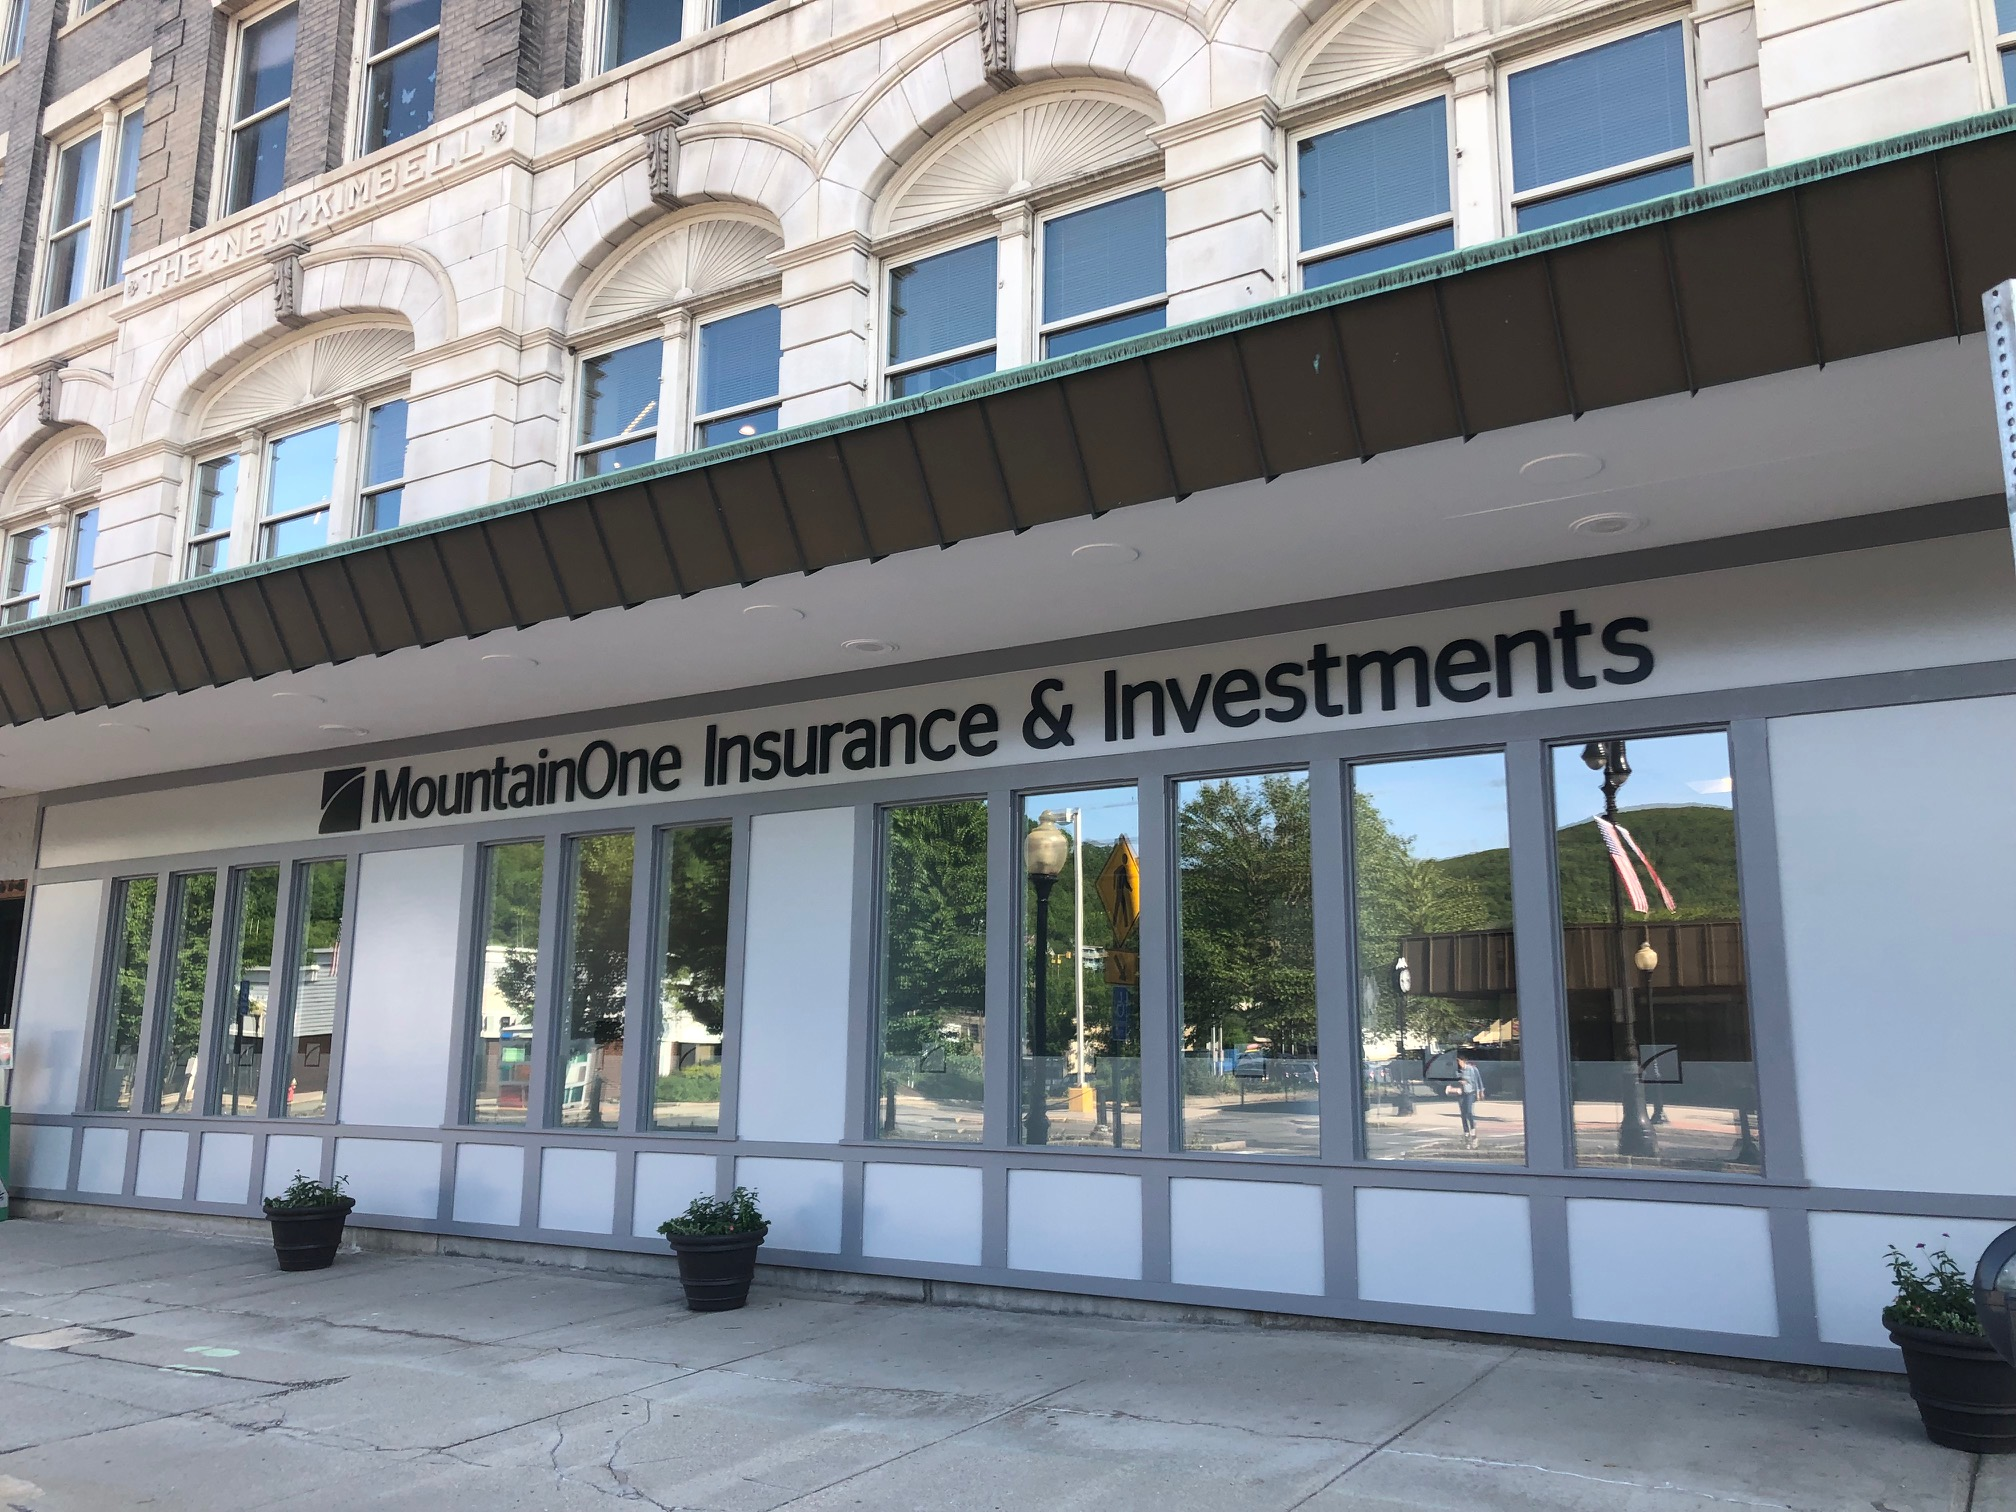 MountainOne Insurance & Investments front facade